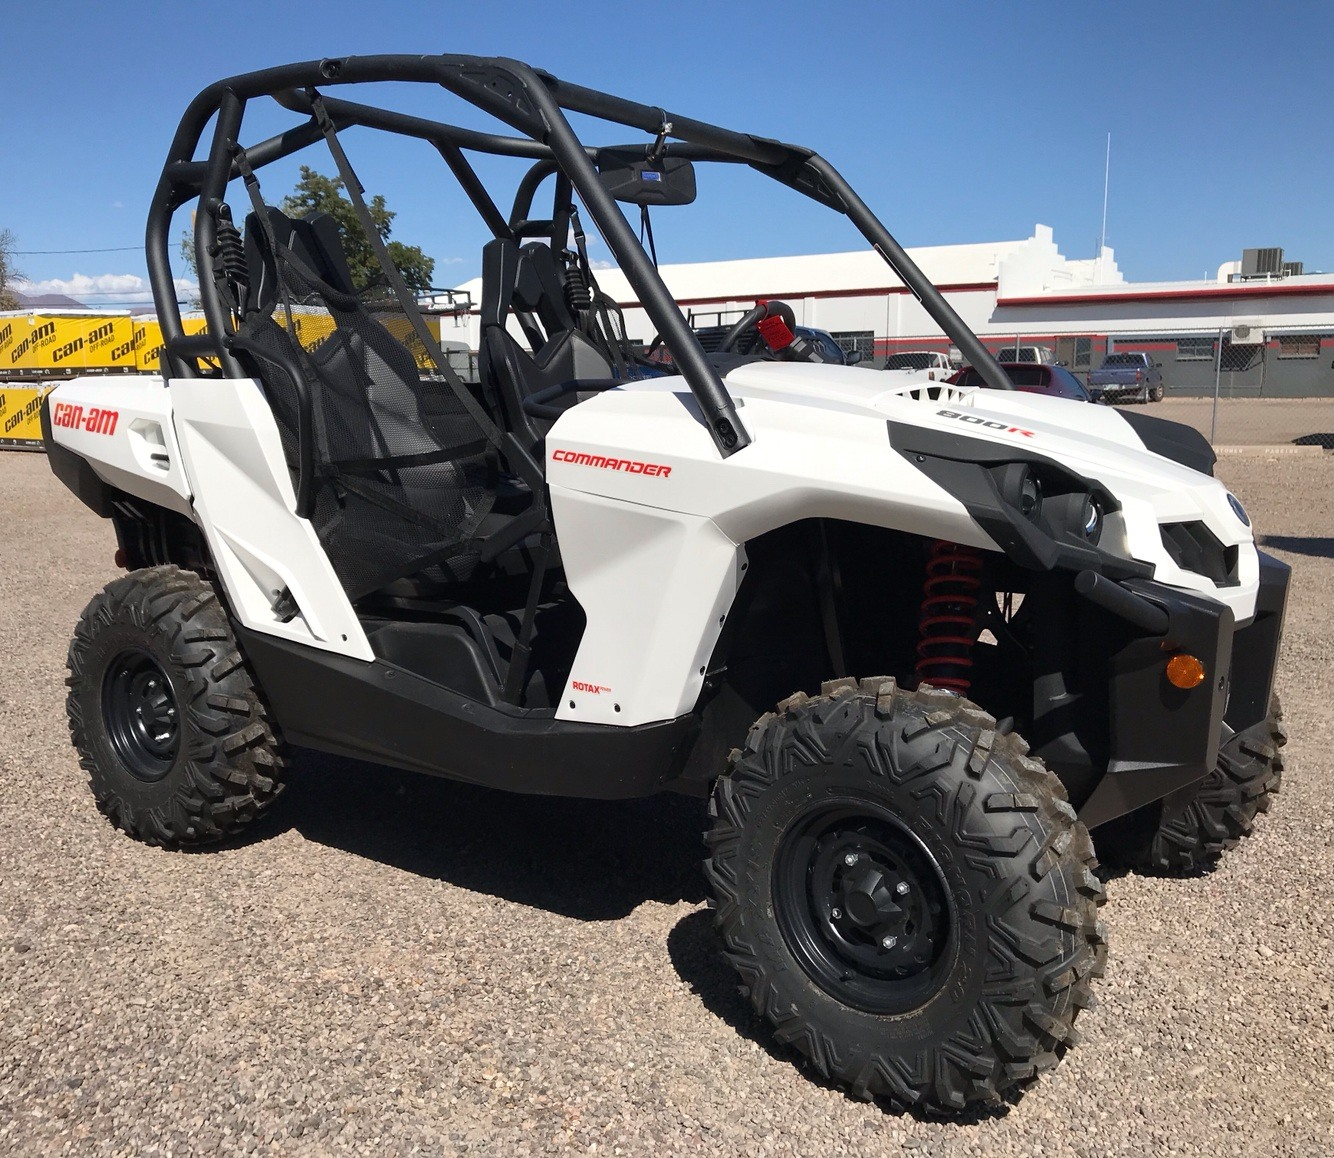 2019 Can-Am Commander 800R in Safford, Arizona - Photo 1